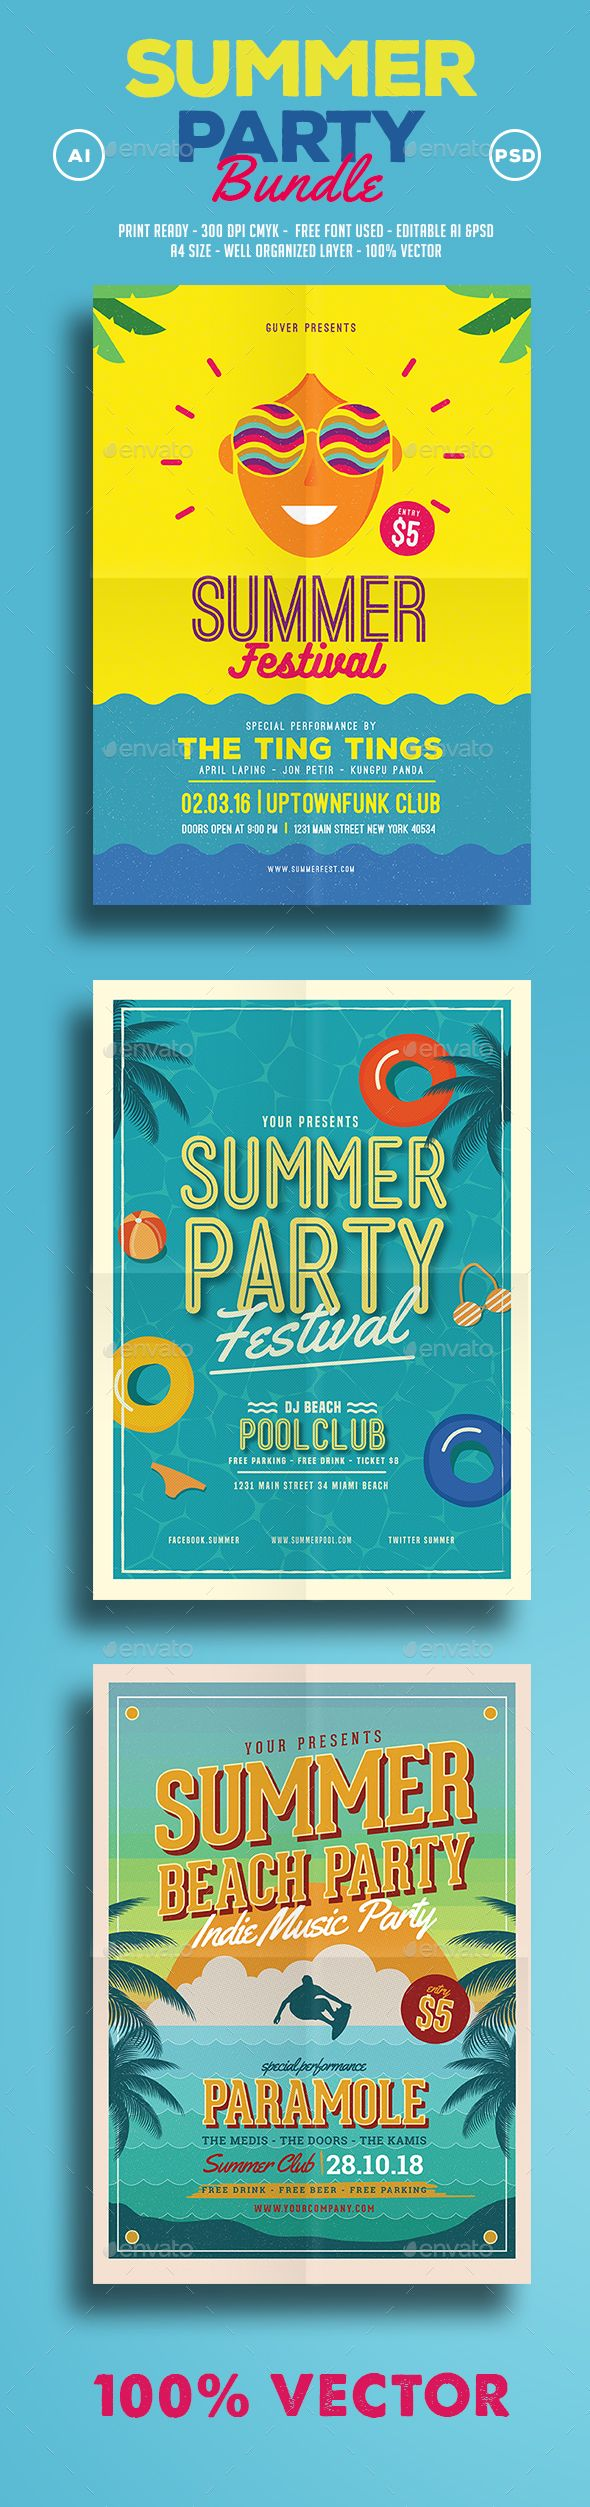 Poster 60 x 80 design - Summer Festival Bundle